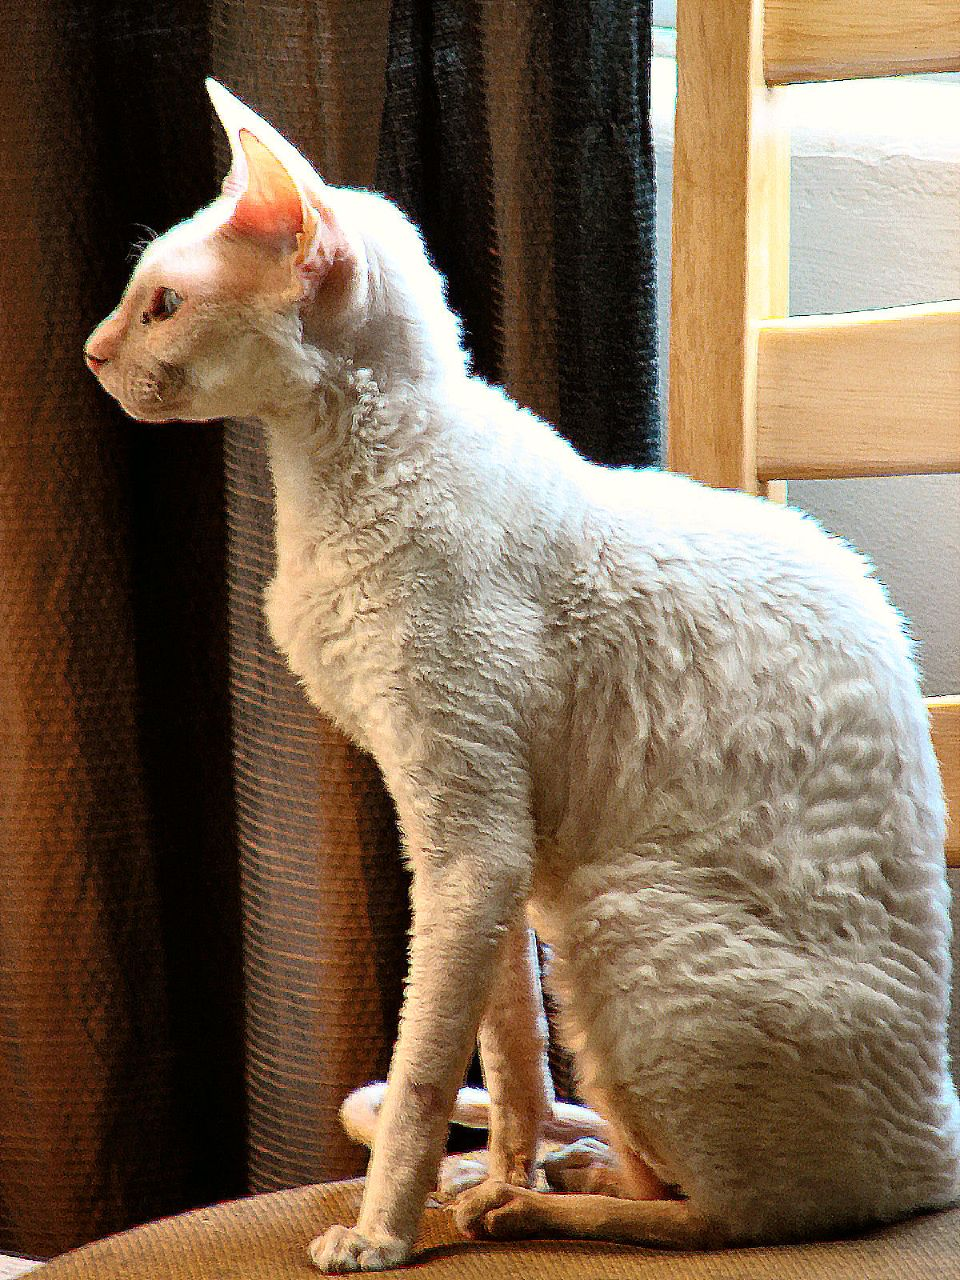 cornish rex katt